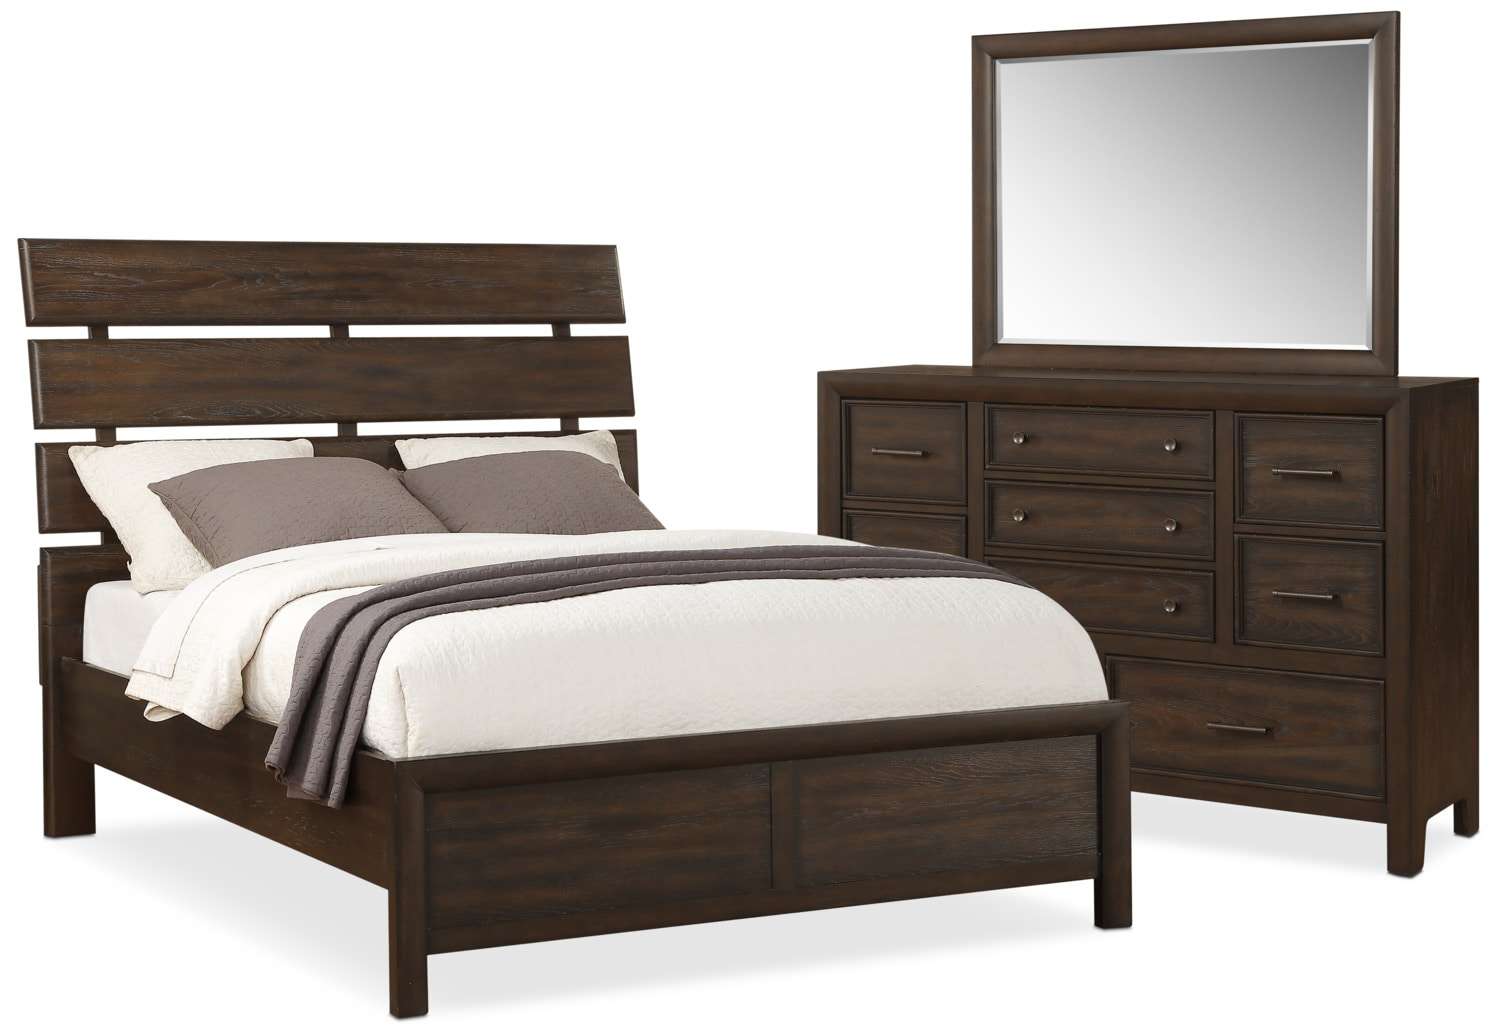 Bedroom Furniture - Hampton 5-Piece King Bedroom Set - Cocoa